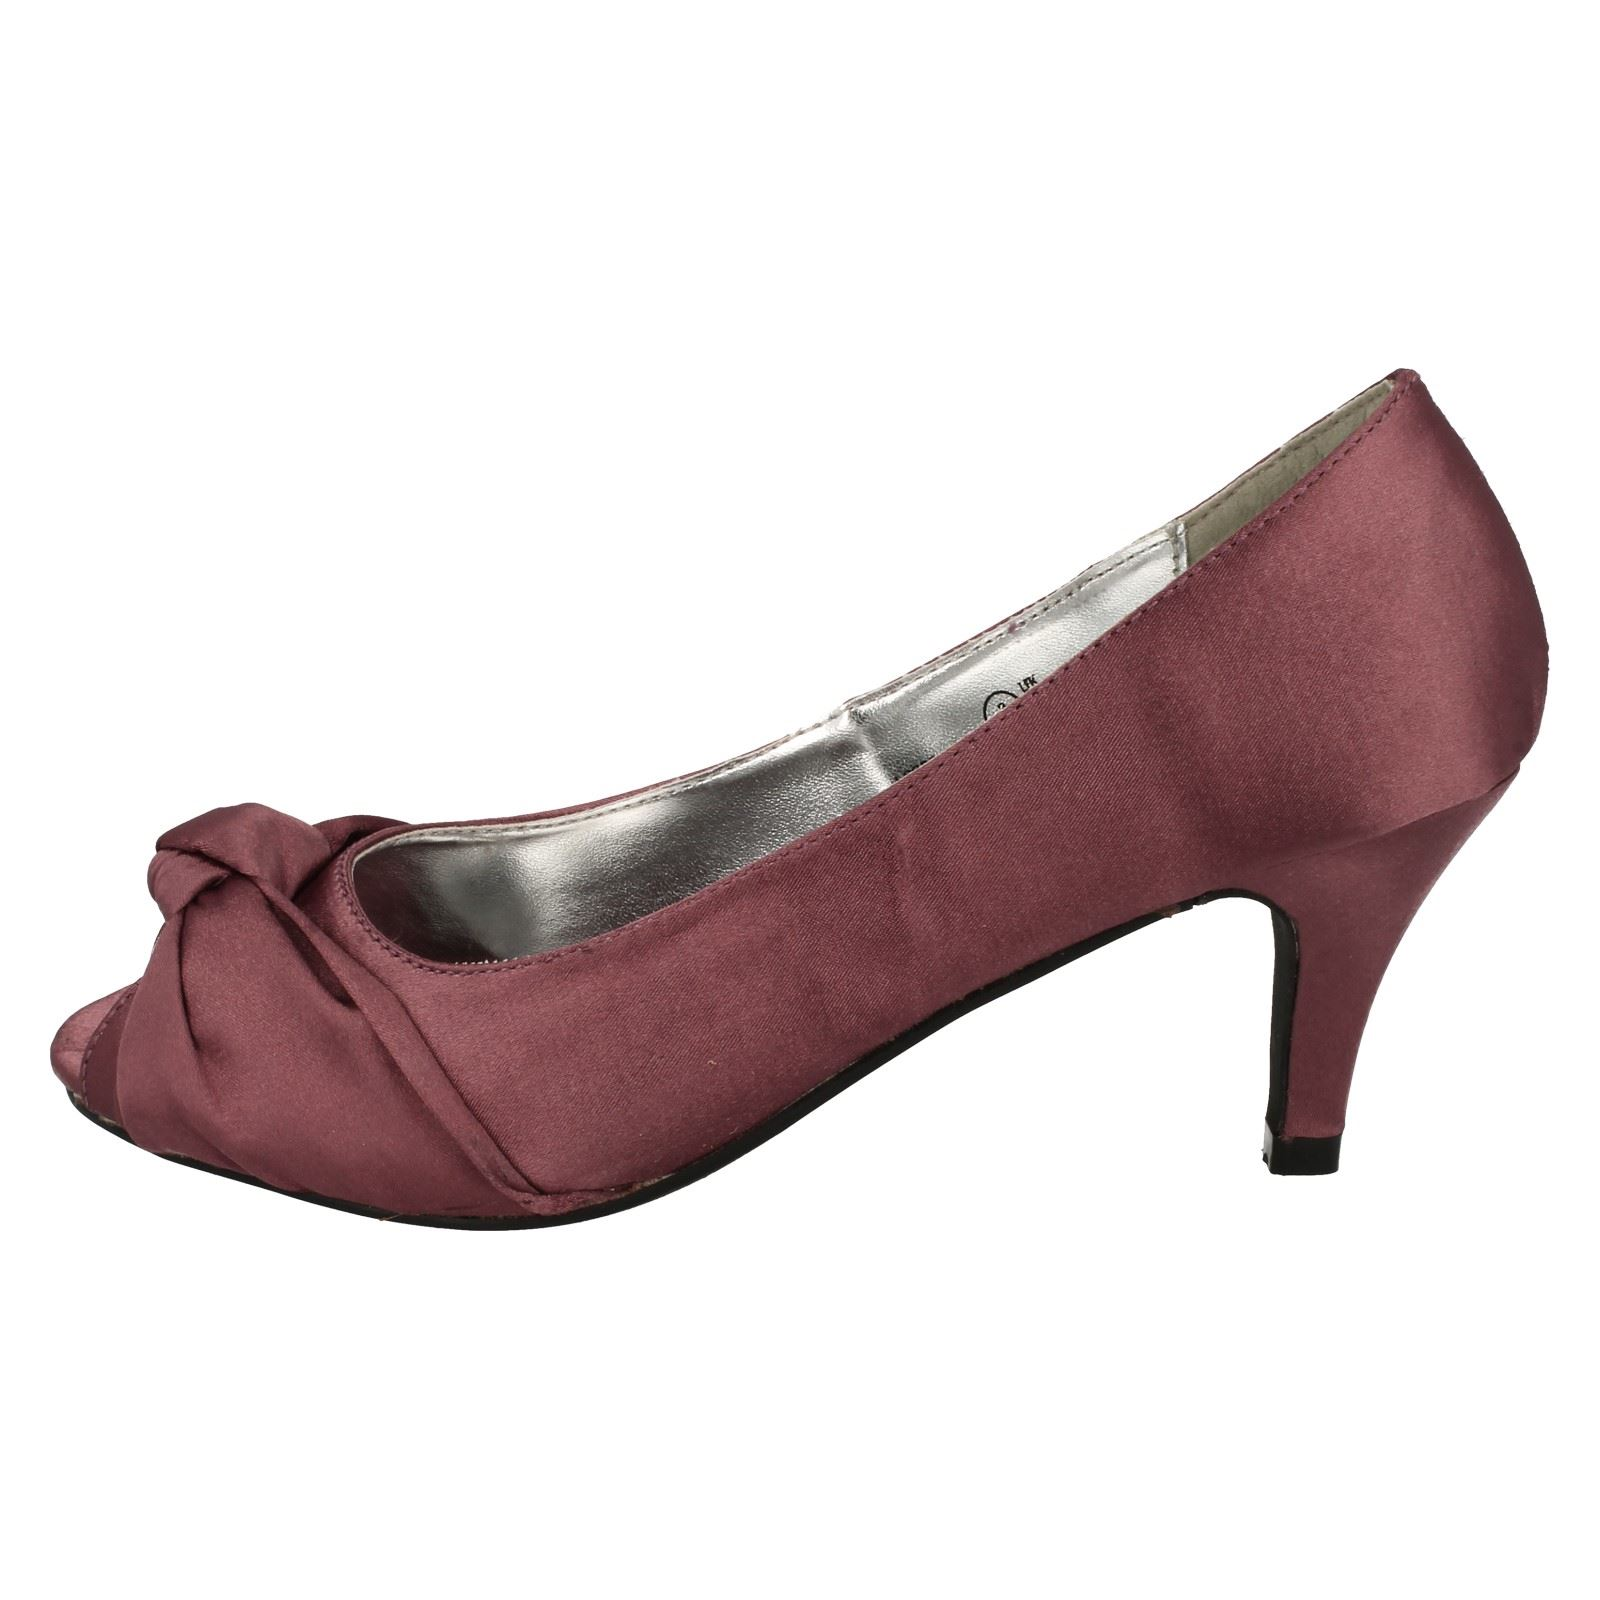 Anne-Michelle-Ladies-Knot-Detail-Peep-Toe-Court-Shoe thumbnail 21